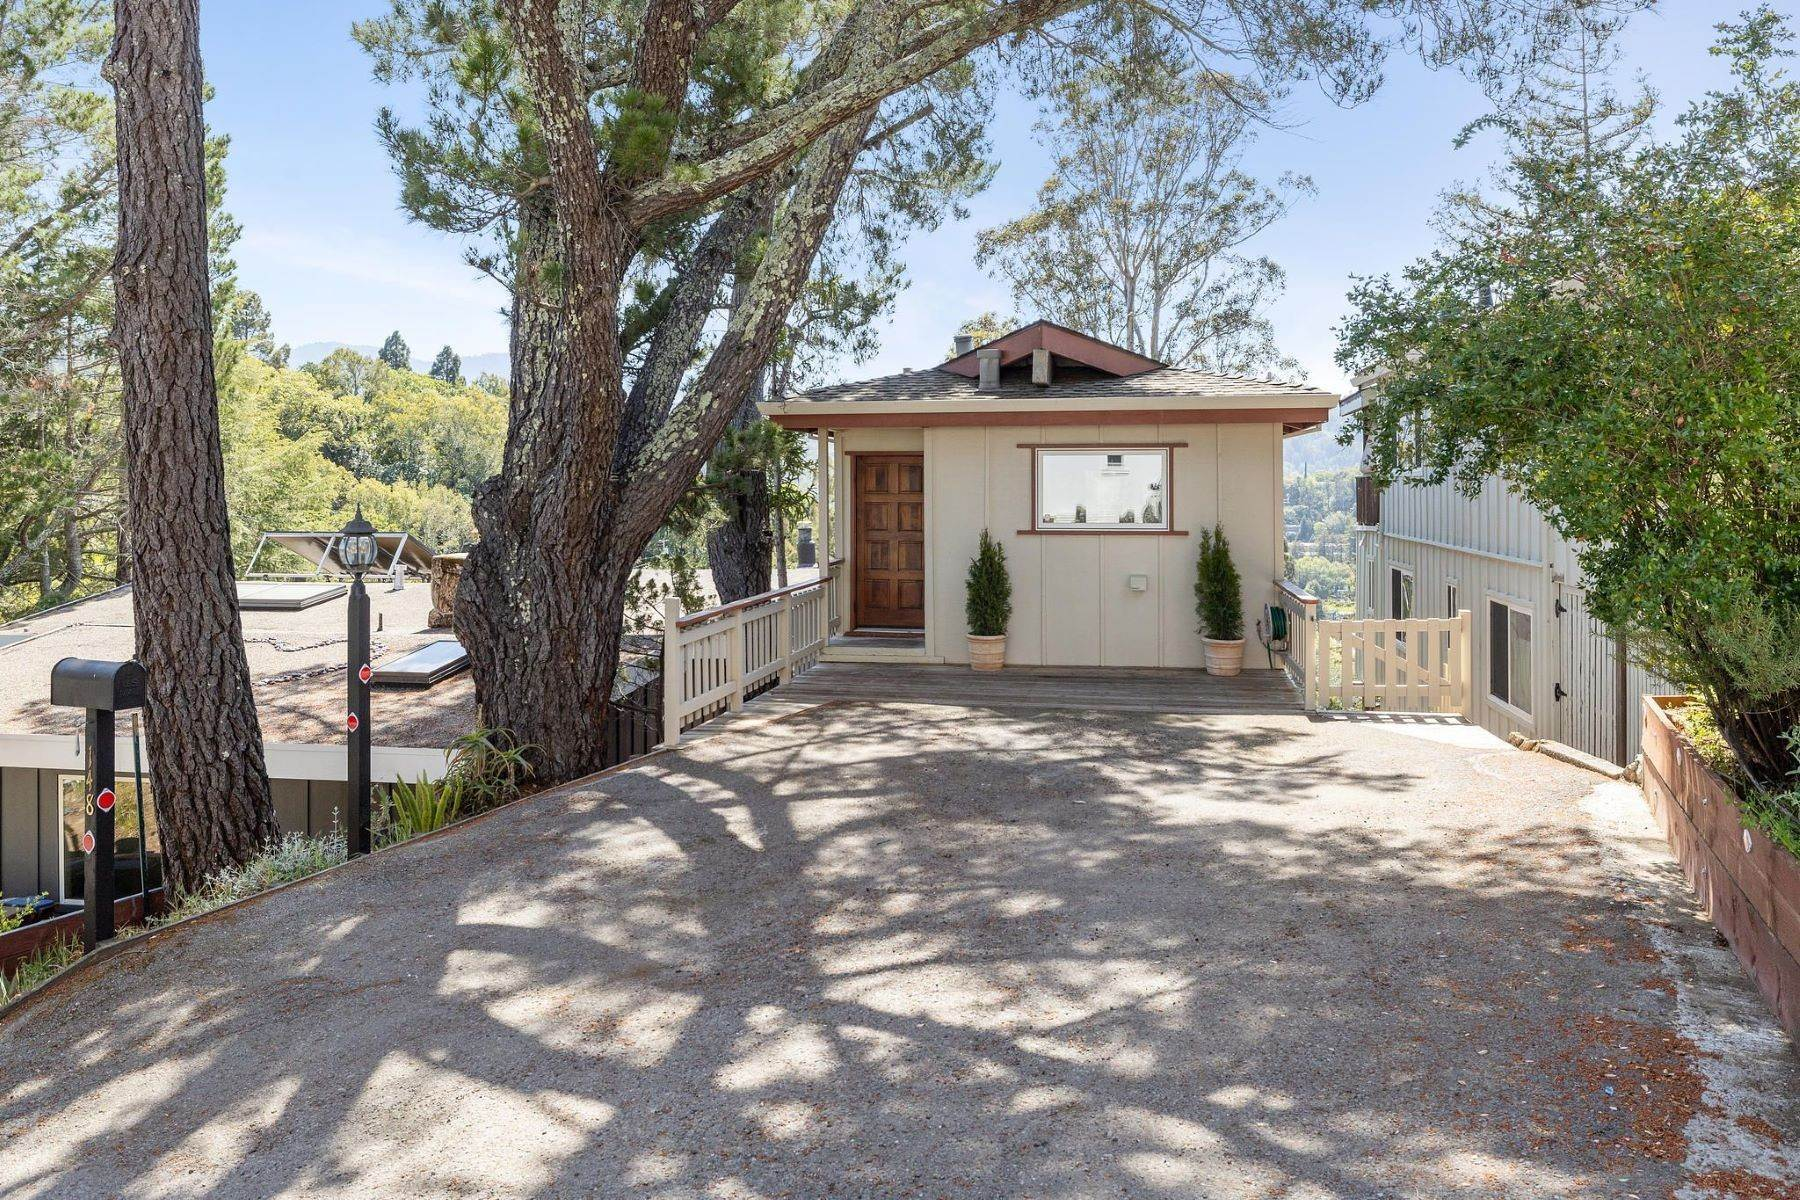 3. Single Family Homes for Sale at Adorable Fairfax Cottage 148 Ridgeway Avenue Fairfax, California 94930 United States